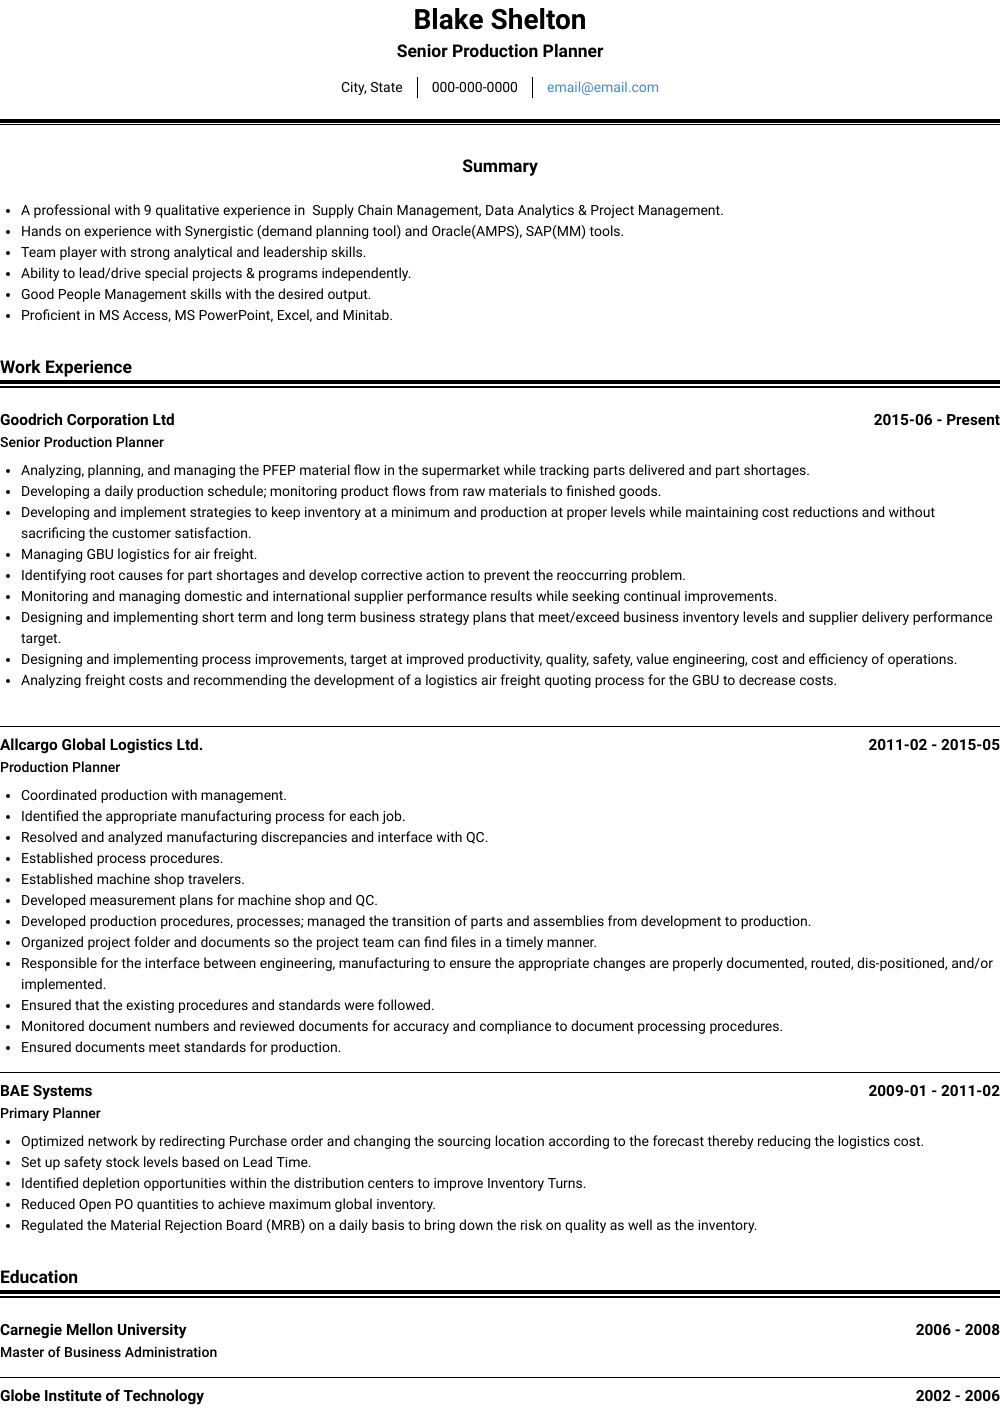 Senior Production Planner Resume Sample and Template